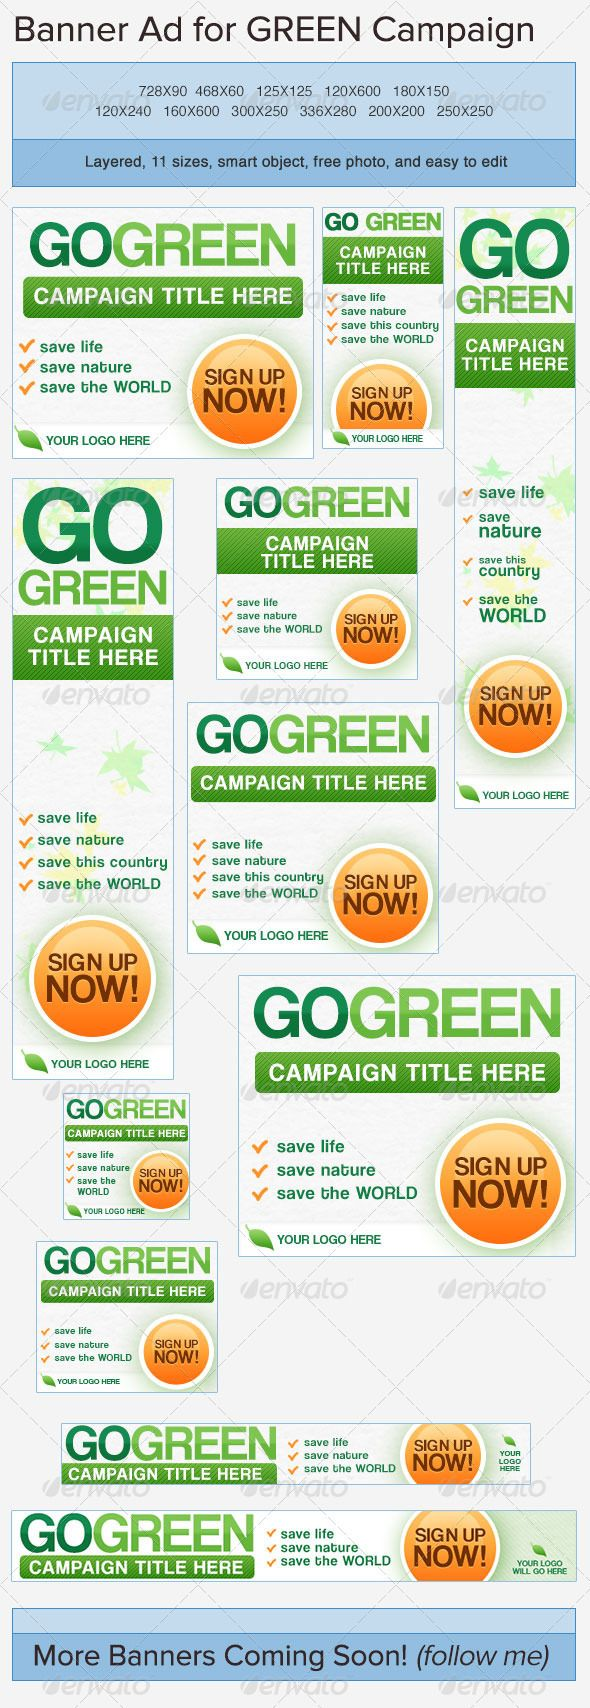 Go Green Web Banner Ads Template PSD | Buy and Download: http://graphicriver.net/item/go-green-banner-ads/3750042?WT.ac=category_thumb&WT.z_author=admiral_adictus&ref=ksioks